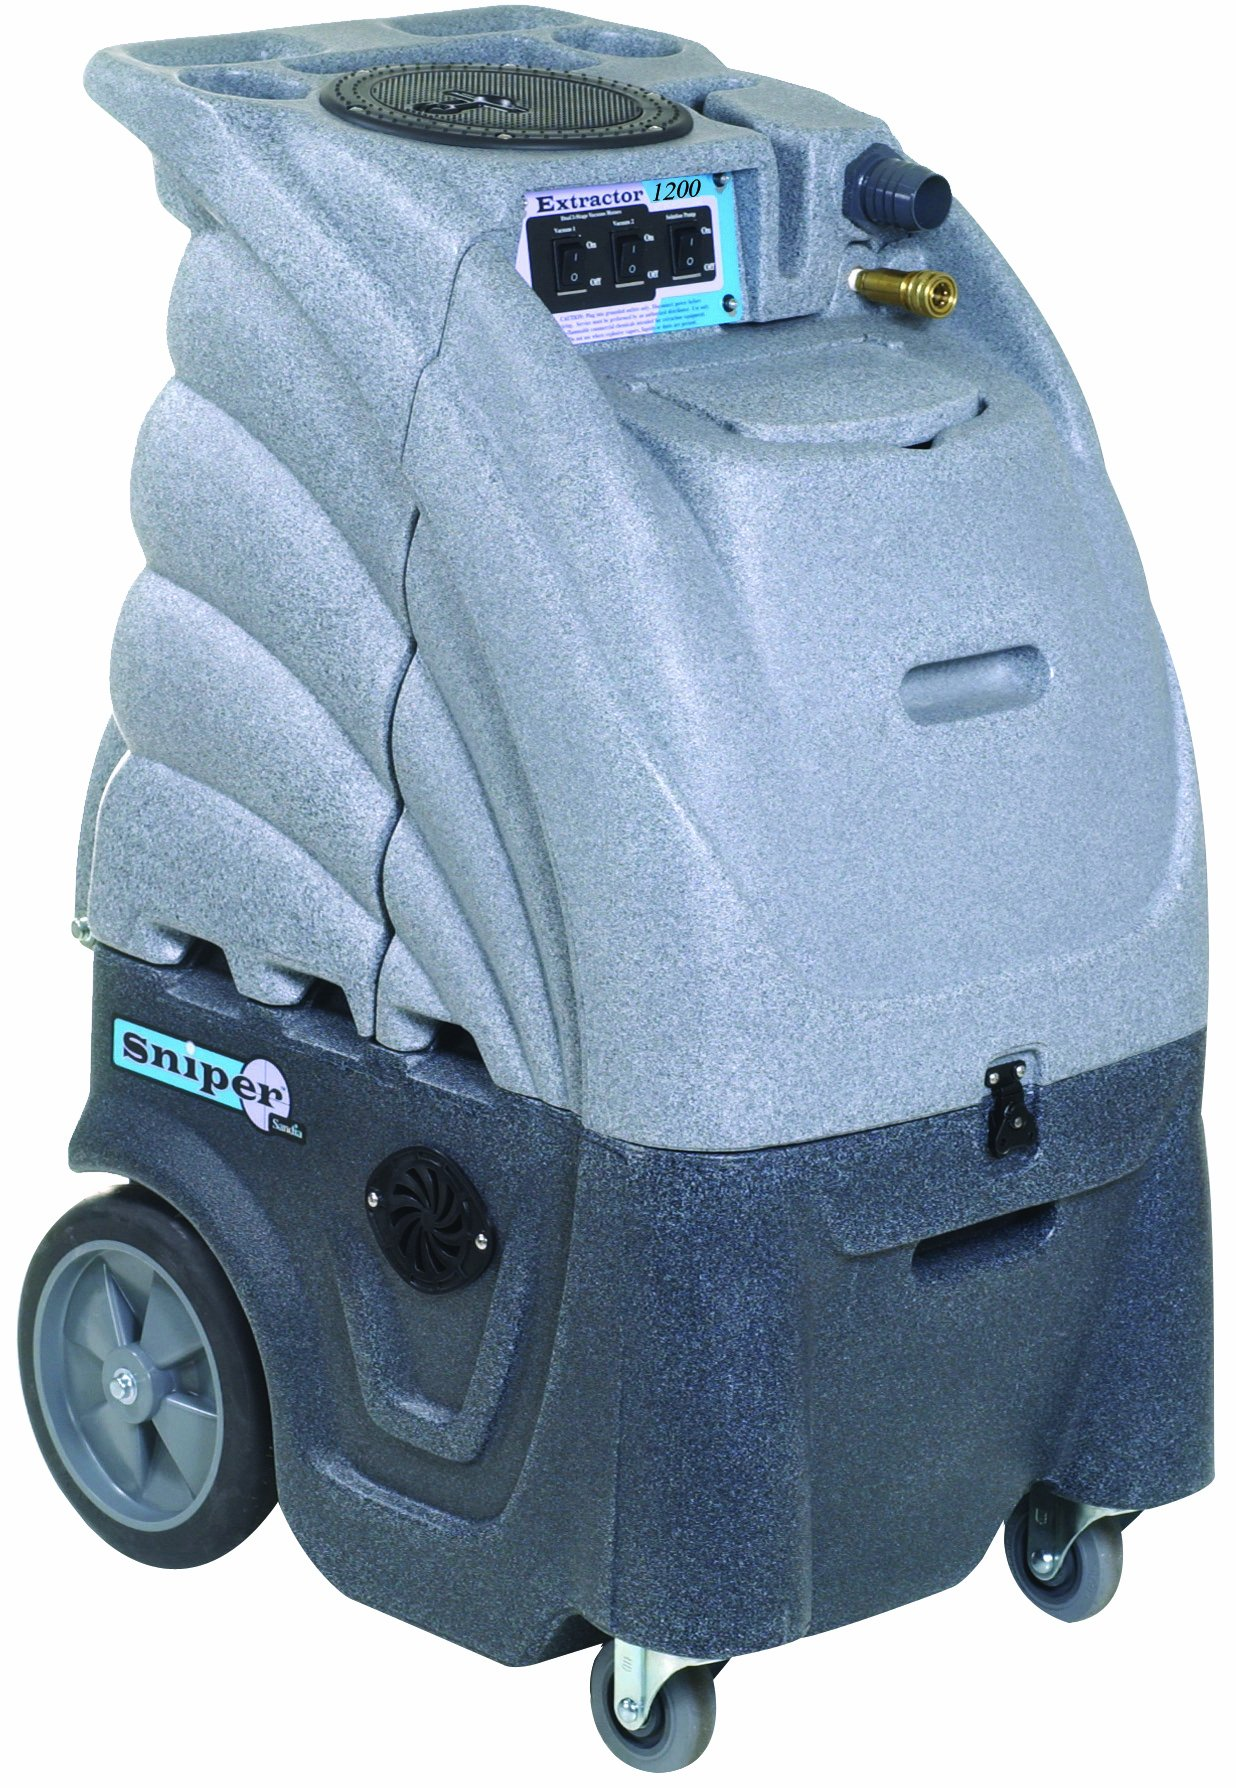 Sandia 80-5000 3 Stage/2 Stage Motor Hard Surface Sniper Commercial Extractor with Auto-Fill and Auto-Dump, 12 Gallon Capacity, 1200 psi Pump